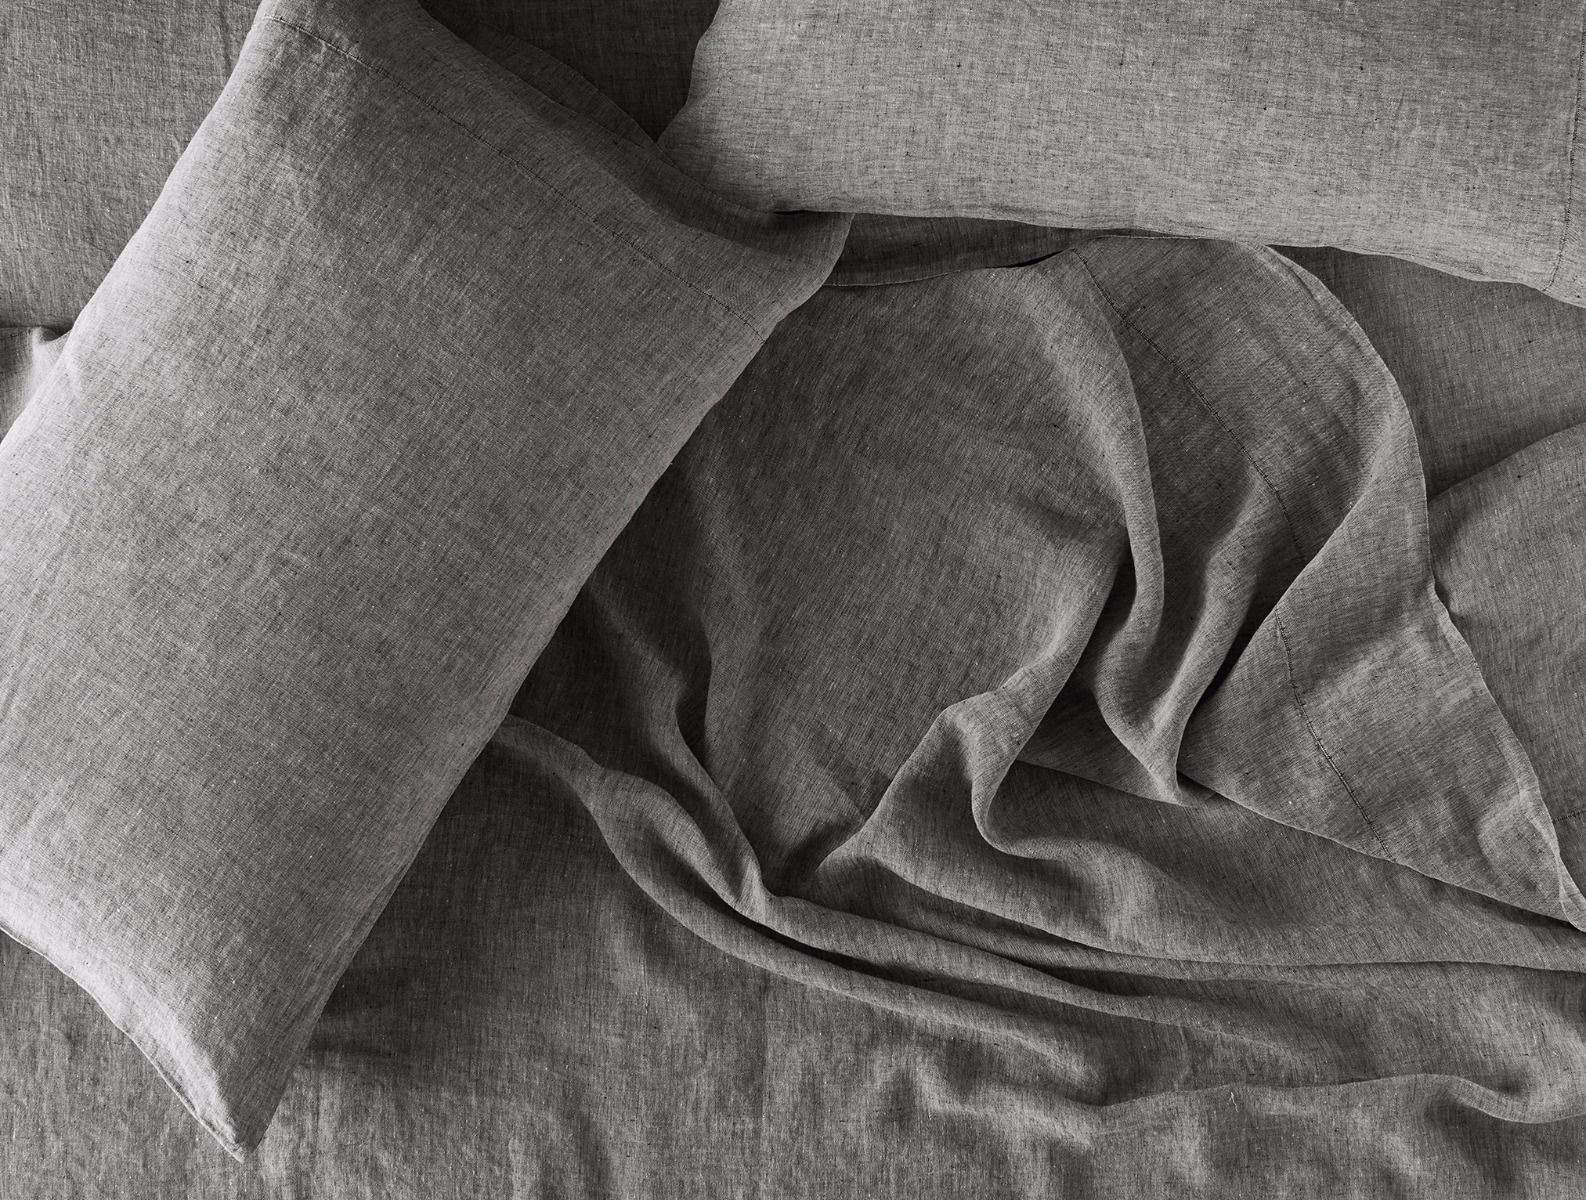 Fig Linens - Coyuchi Organic Linen Chambray Bedding in Charcoal gray